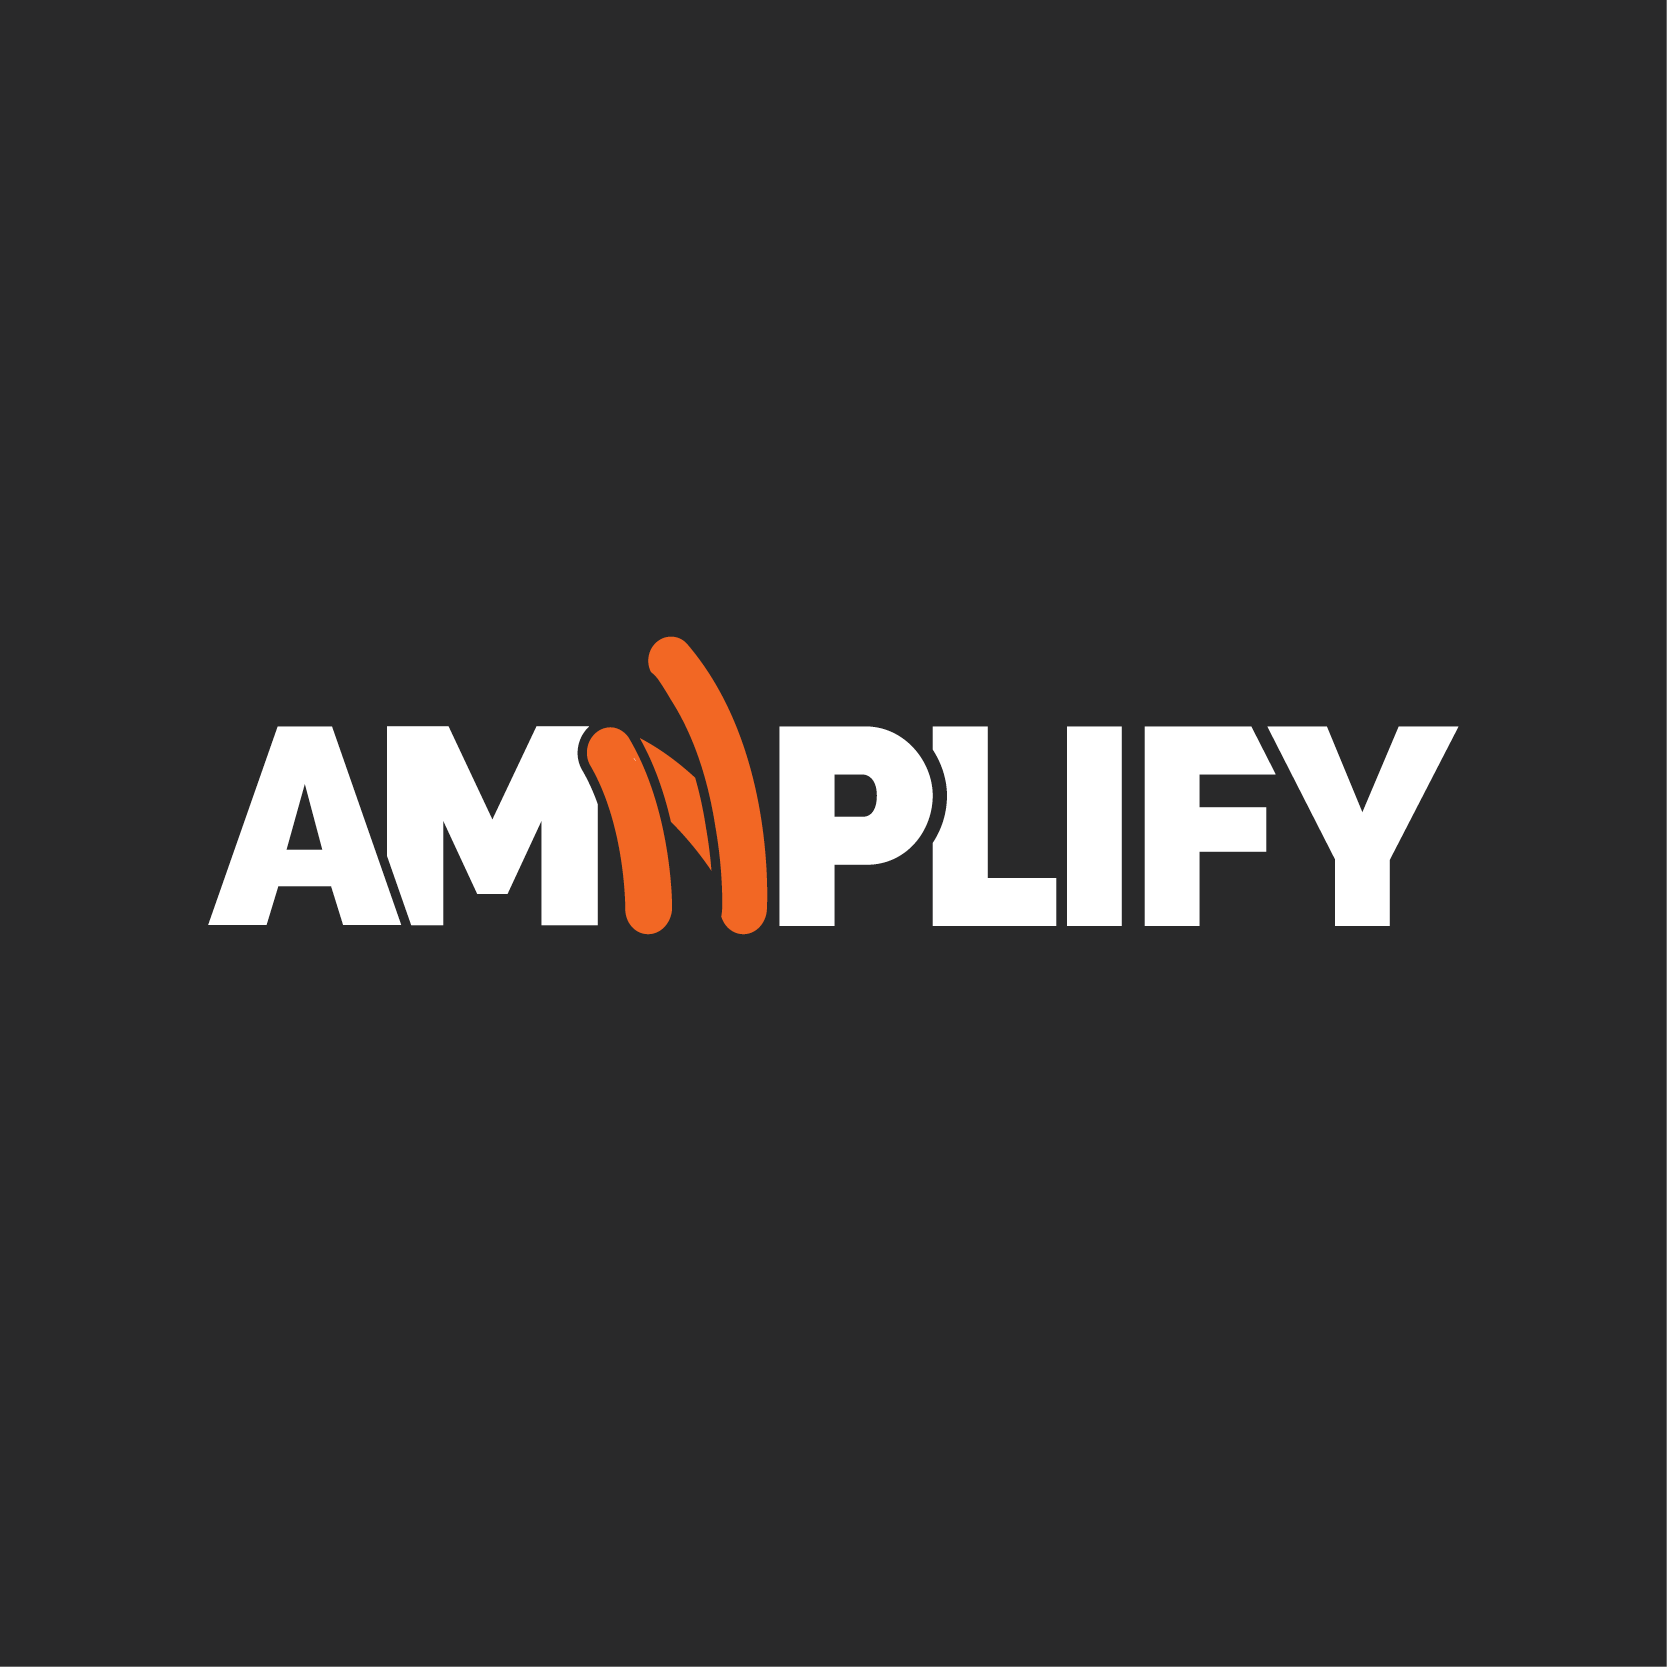 AMNPLIFY - Interview